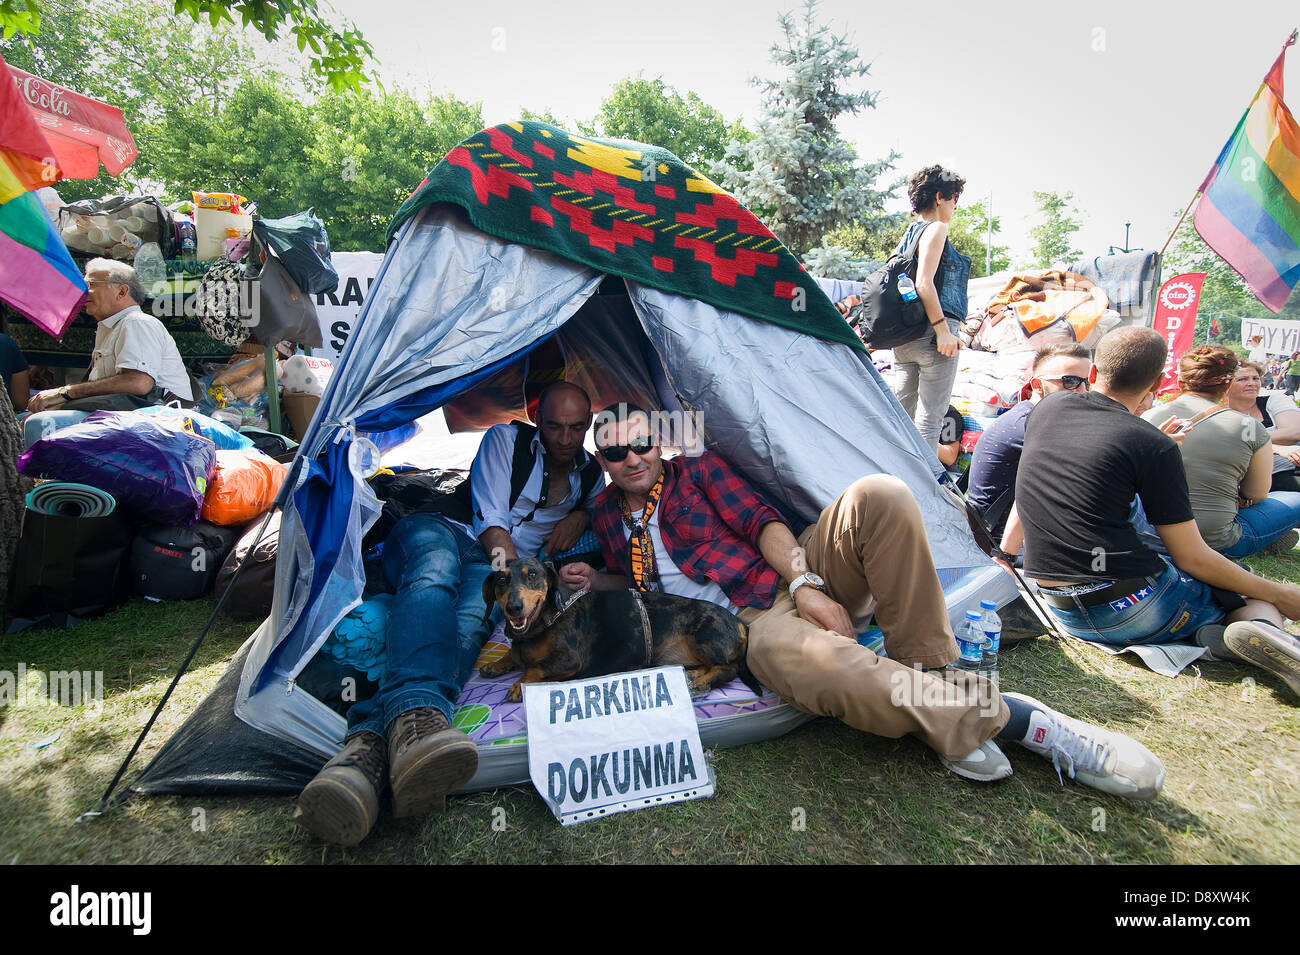 Istanbul, Turkey. 5th June, 2013.  On 31st May a previously peaceful protest against the demolition of Gezi Park - Stock Image